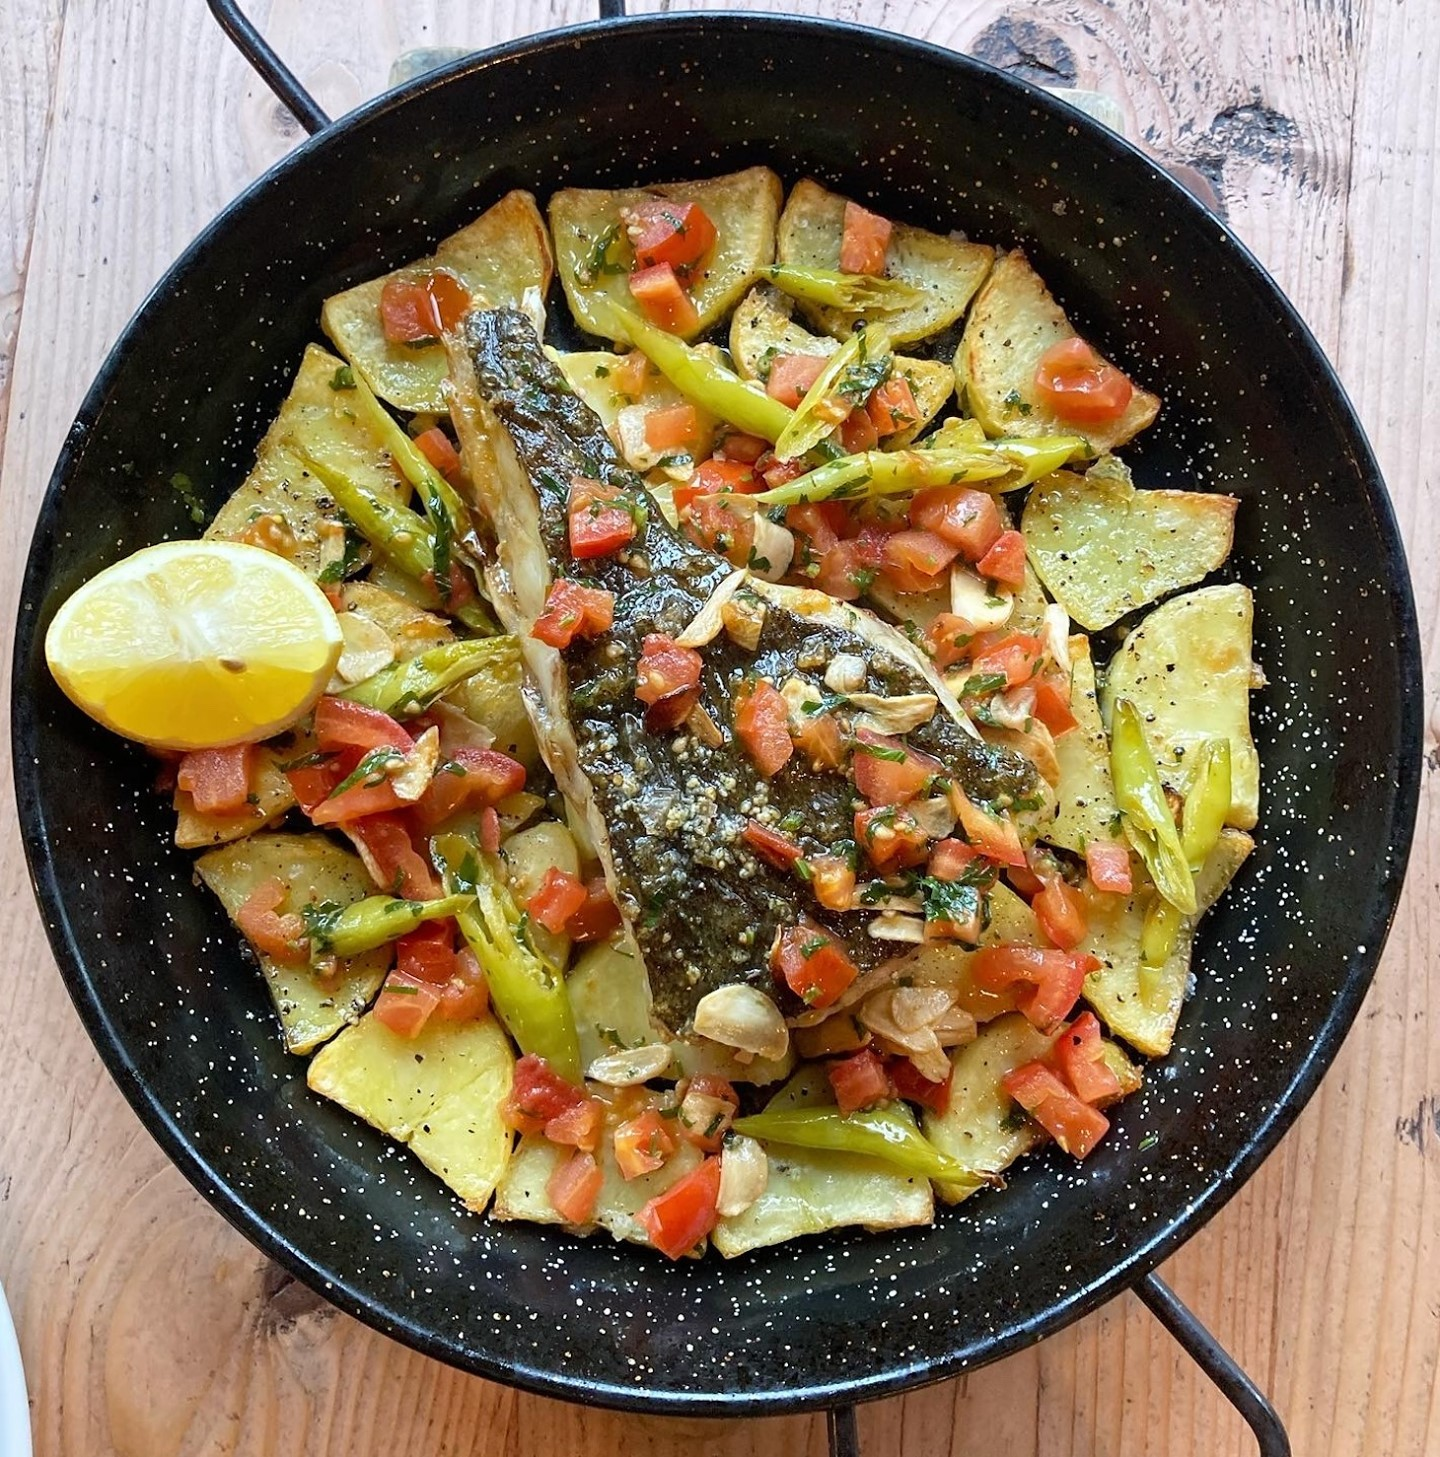 OUR DELICIOUS SKATE WING DISH IS BACK ON THE MENU!  This time we are serving this for one person as well as for two!   £16.50 or £32.50!  Skate wing, a crispy bed of potatoes, garlic & guindilla sofrito accompanied by a fresh green salad - it's a must try. Those who know, know! ;)   #highgate #northlondon #delicious #deliciousfood #food #foodporn #foodphotography #foodstagram #foodofinstagram